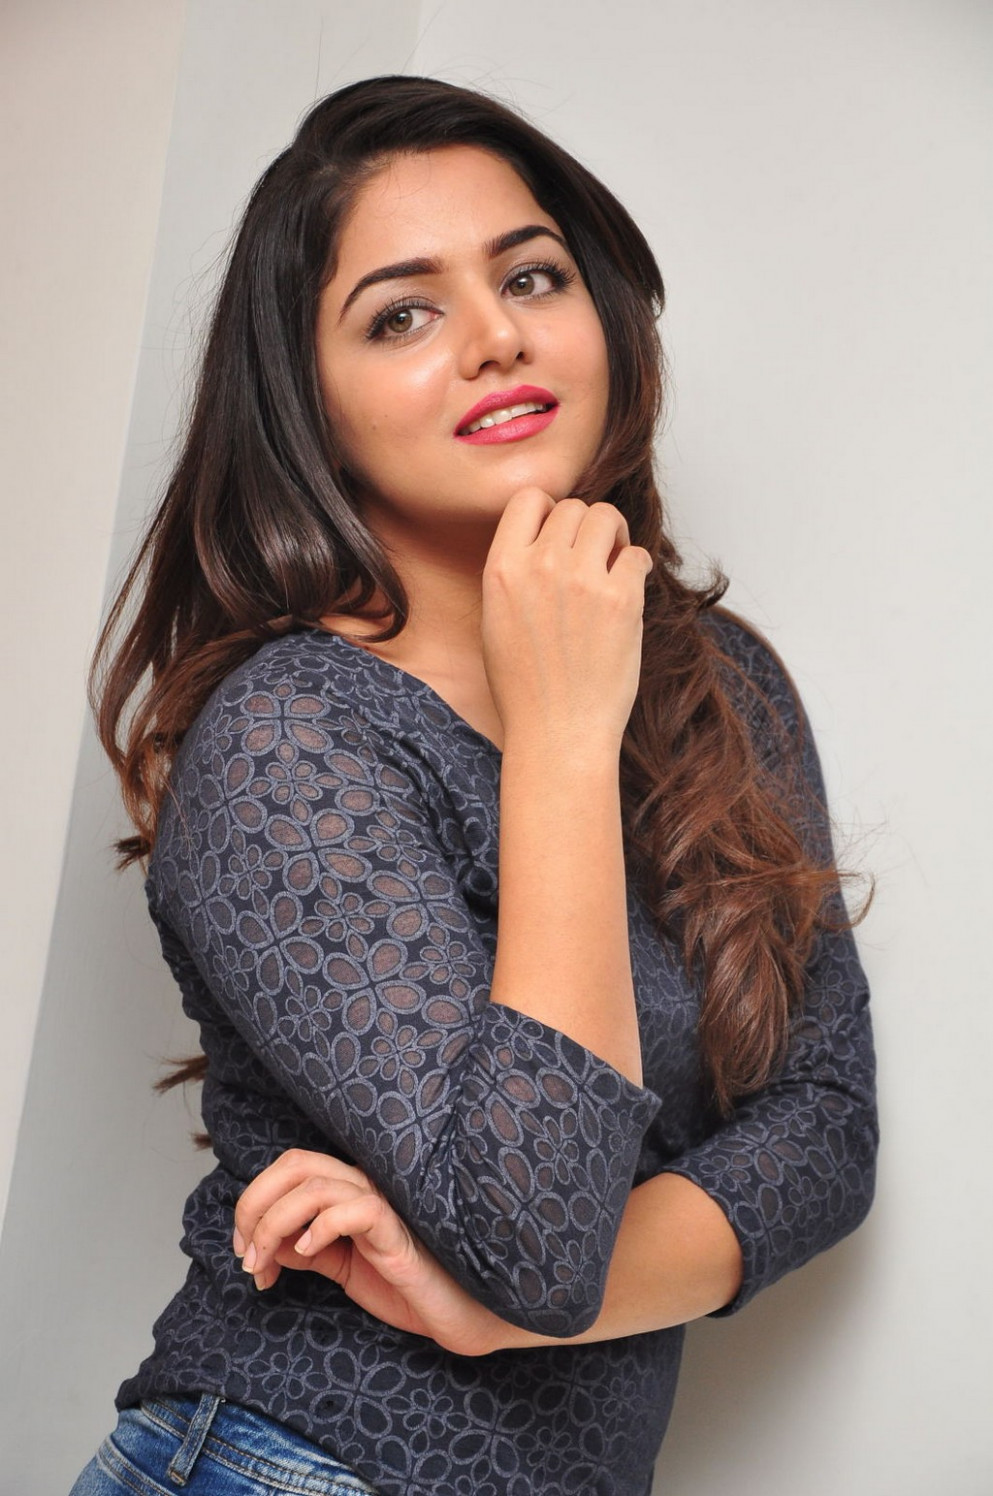 Tollywood Actress Wamiqa Gabbi Hot Images In Blue Jeans ...